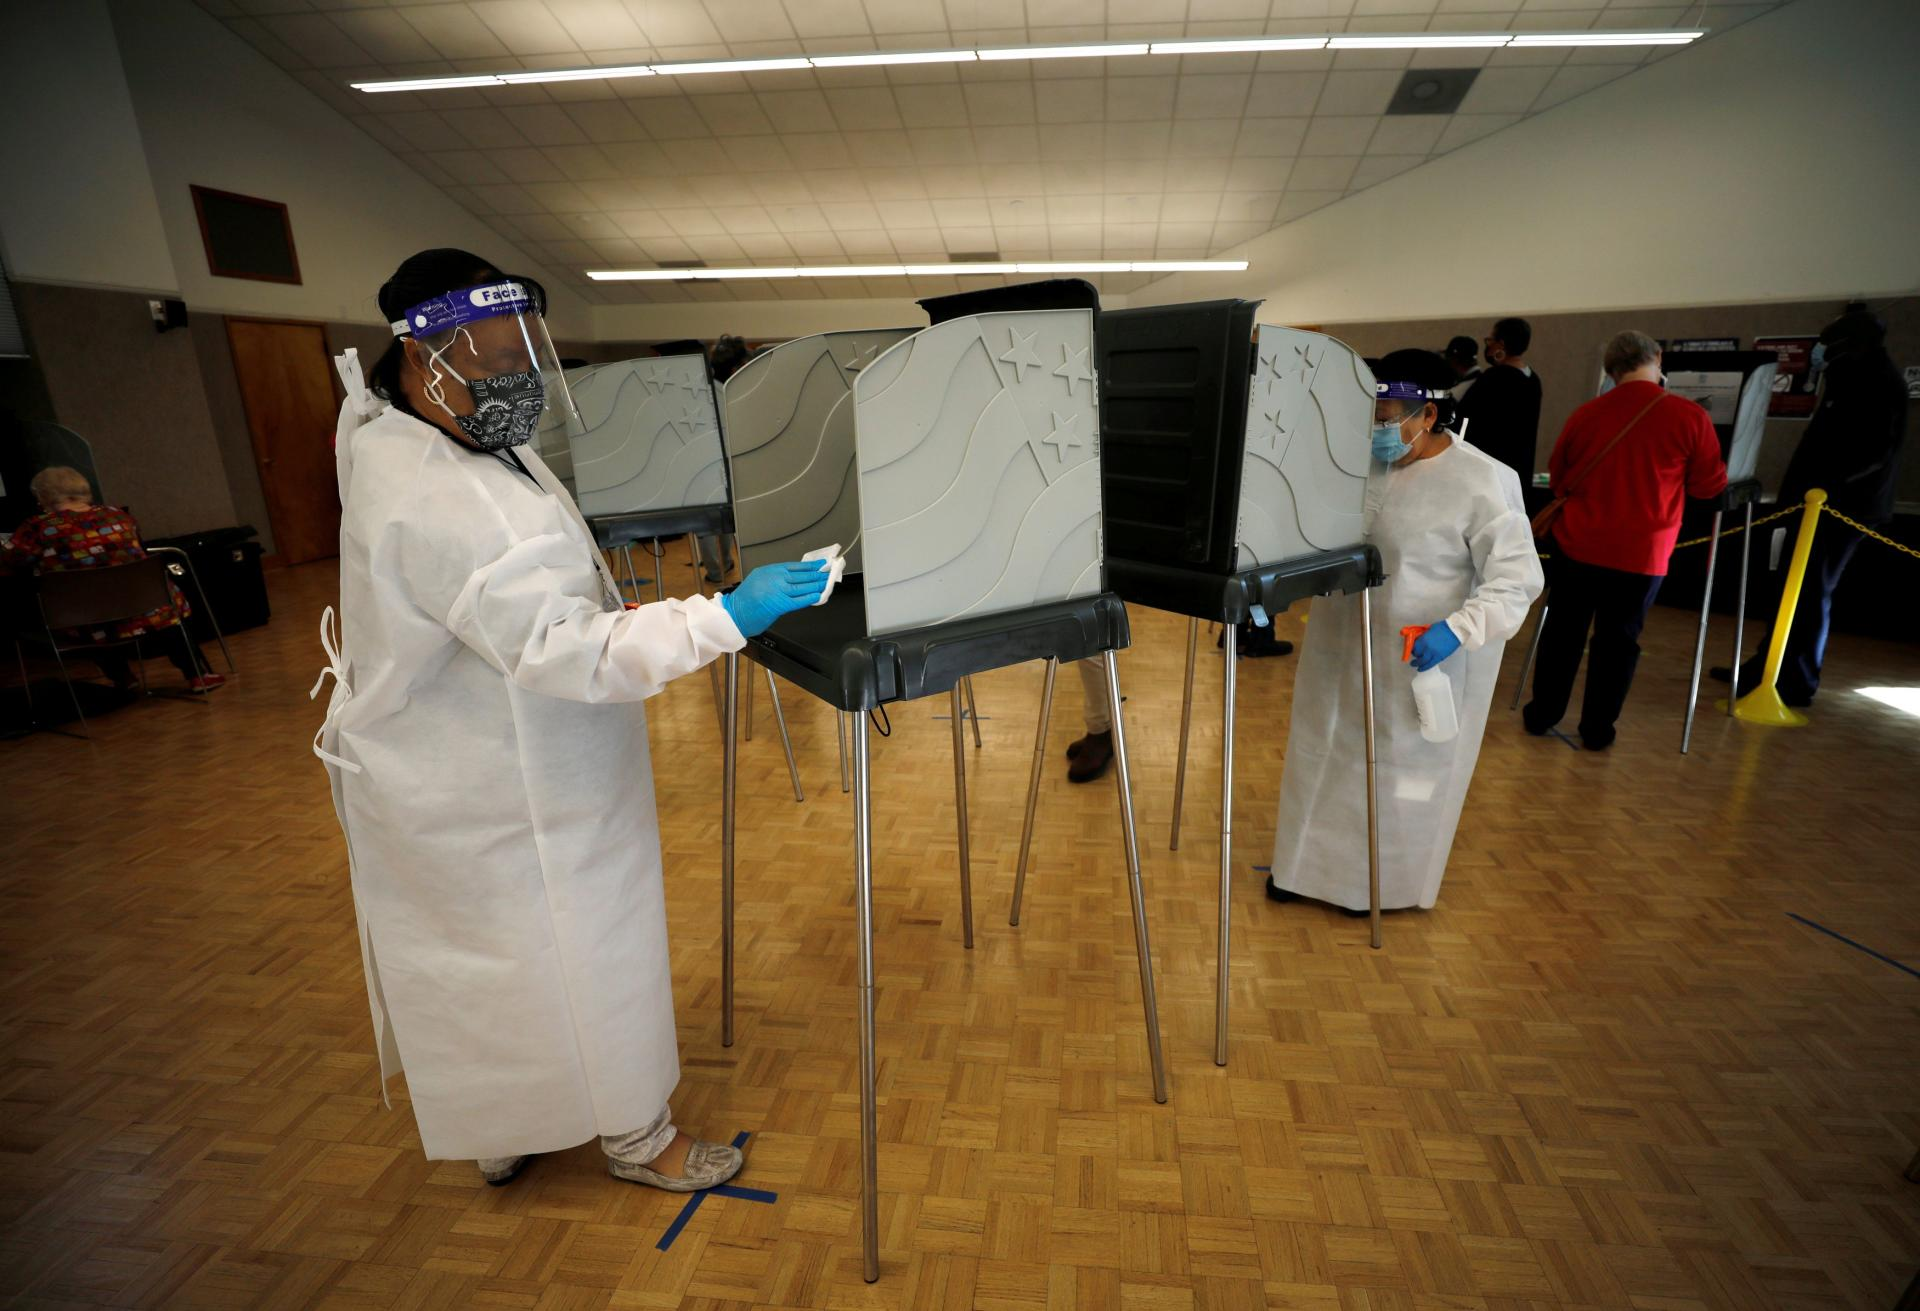 In order to organize the vote during the Covid-19 epidemic, the voting booths at the polling station in Durham, North Carolina, are disinfected before each use, this Thursday, October 15.